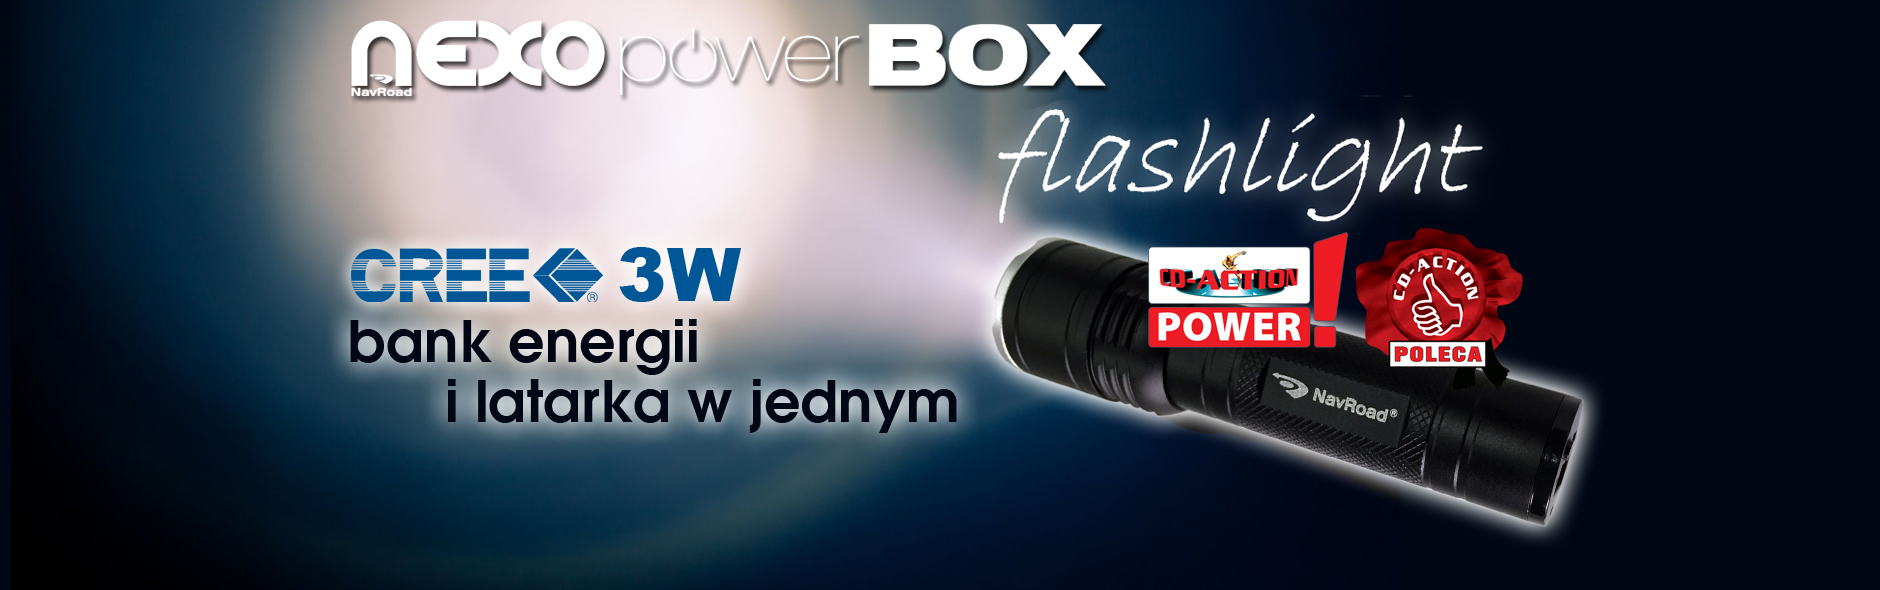 powerbox-flaslight_banner-nagrody